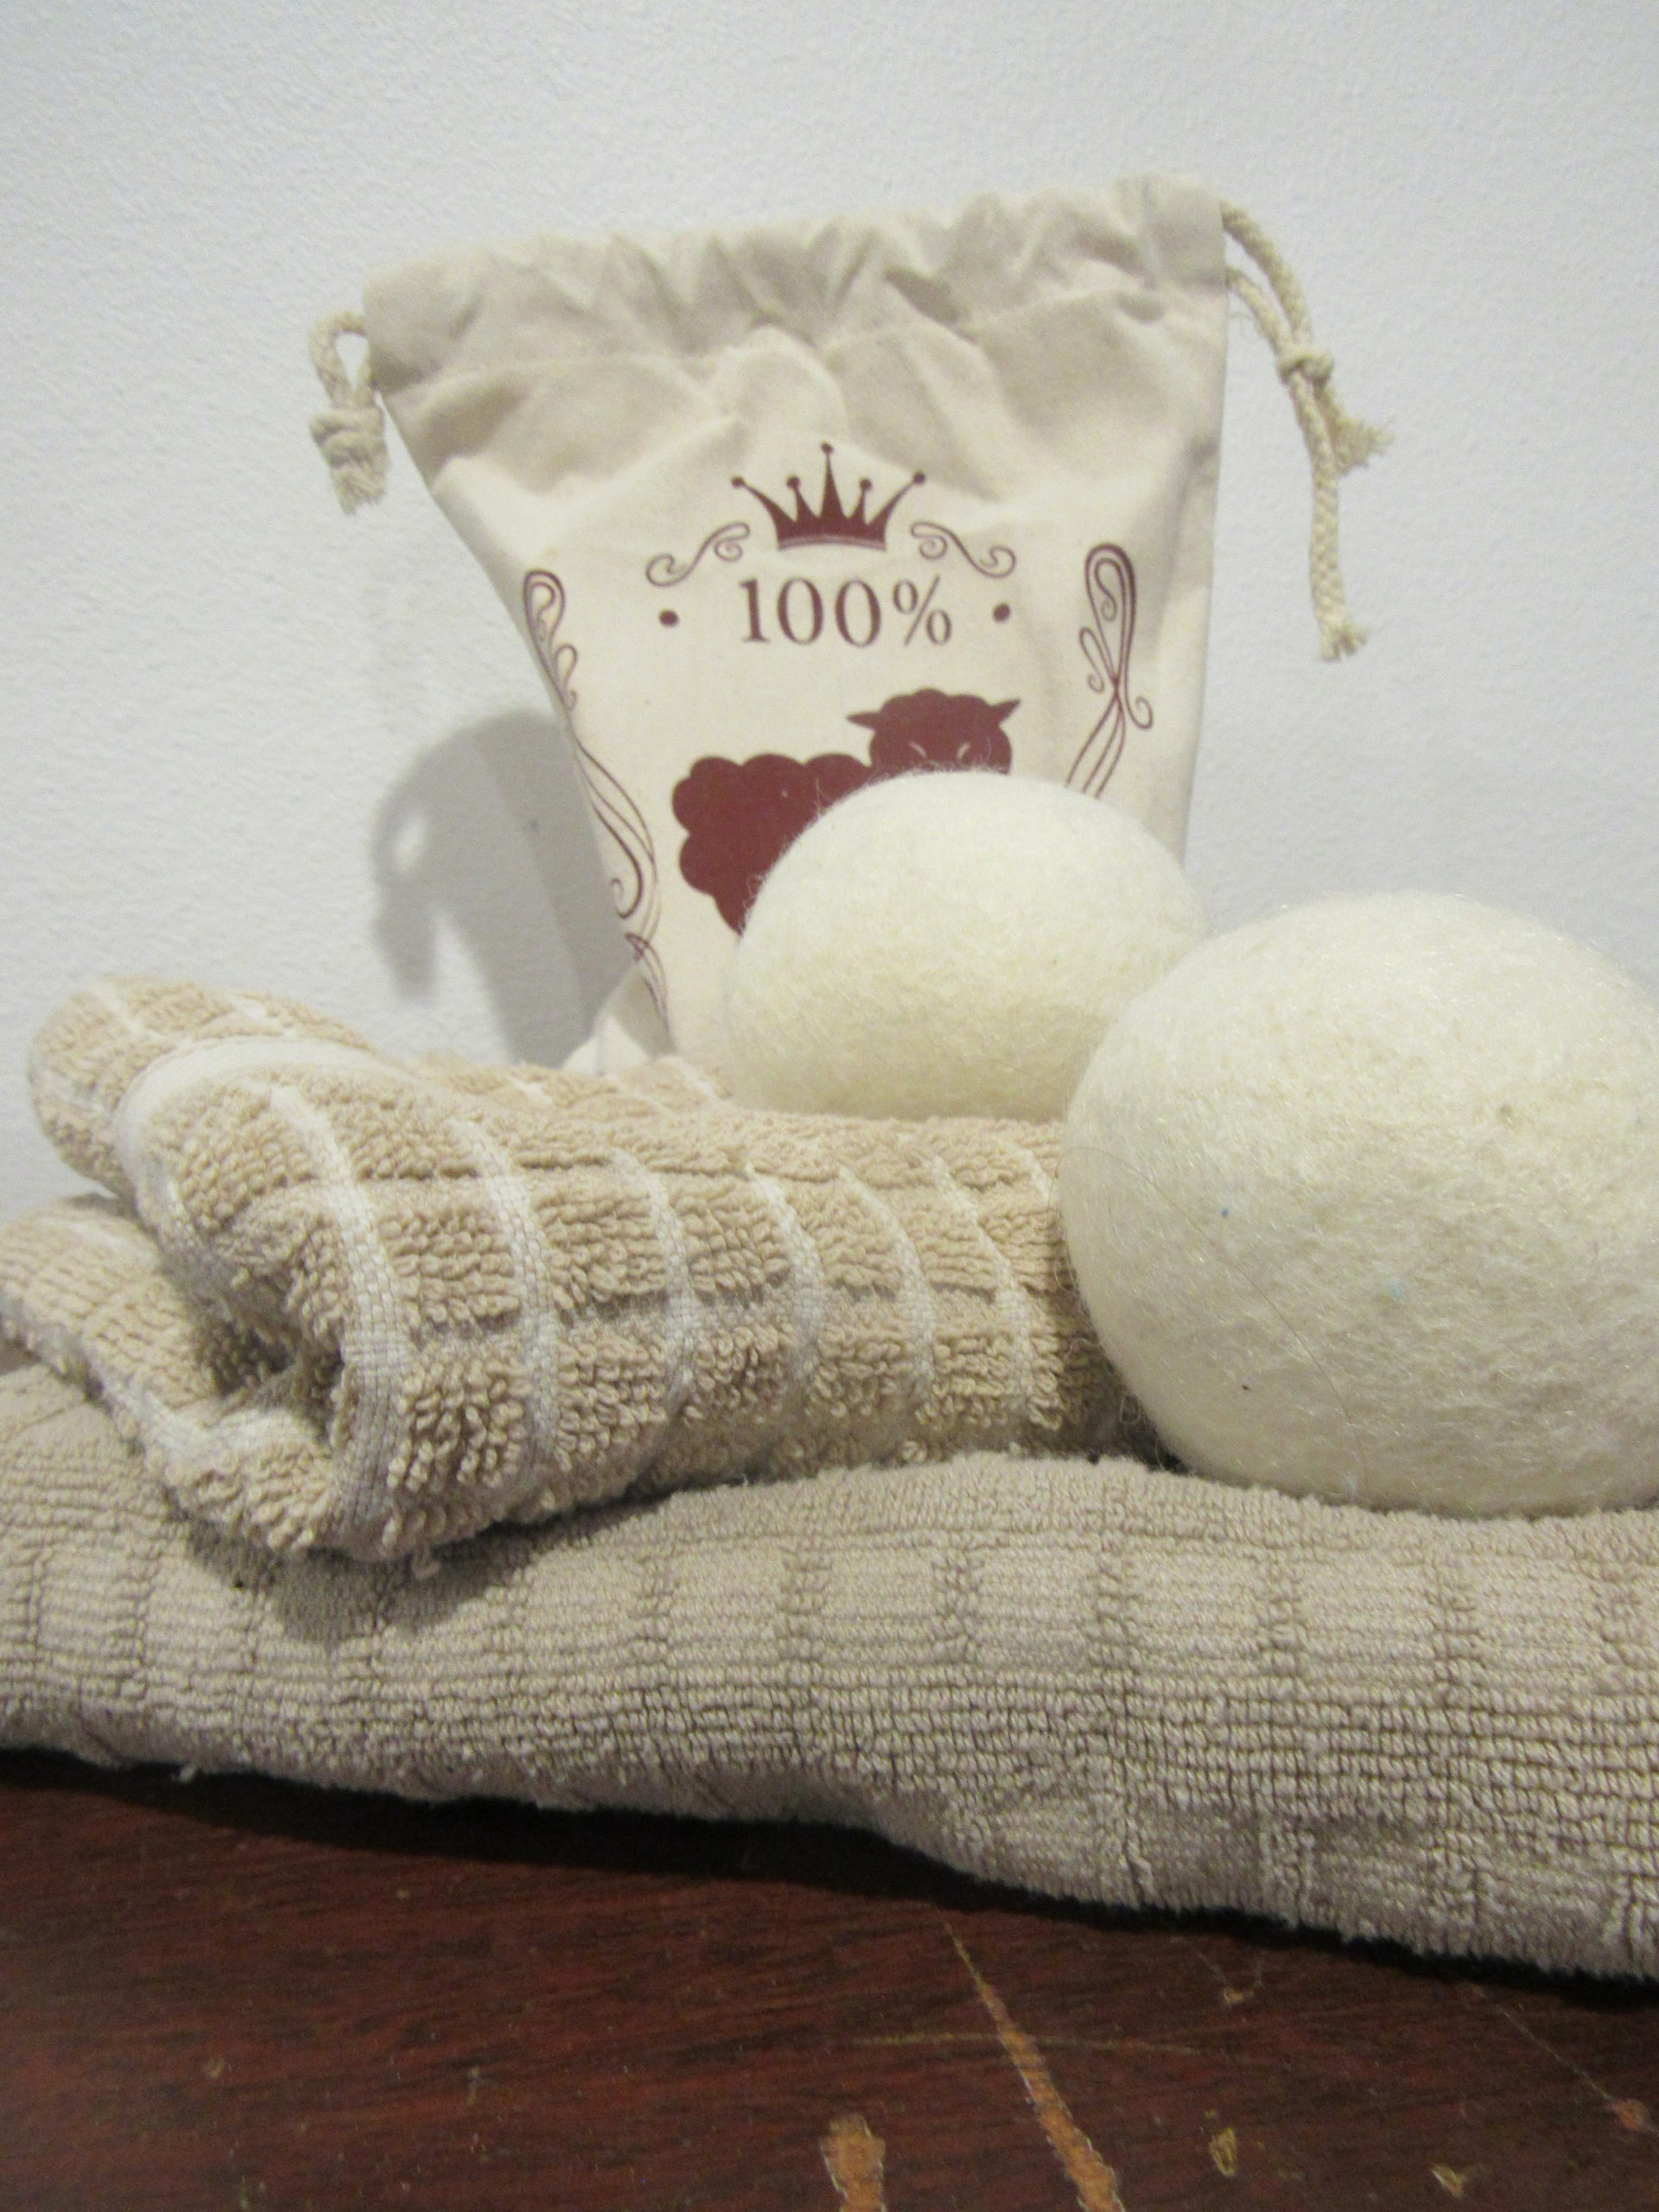 How to Reduce Static Cling From Using Dryer Balls